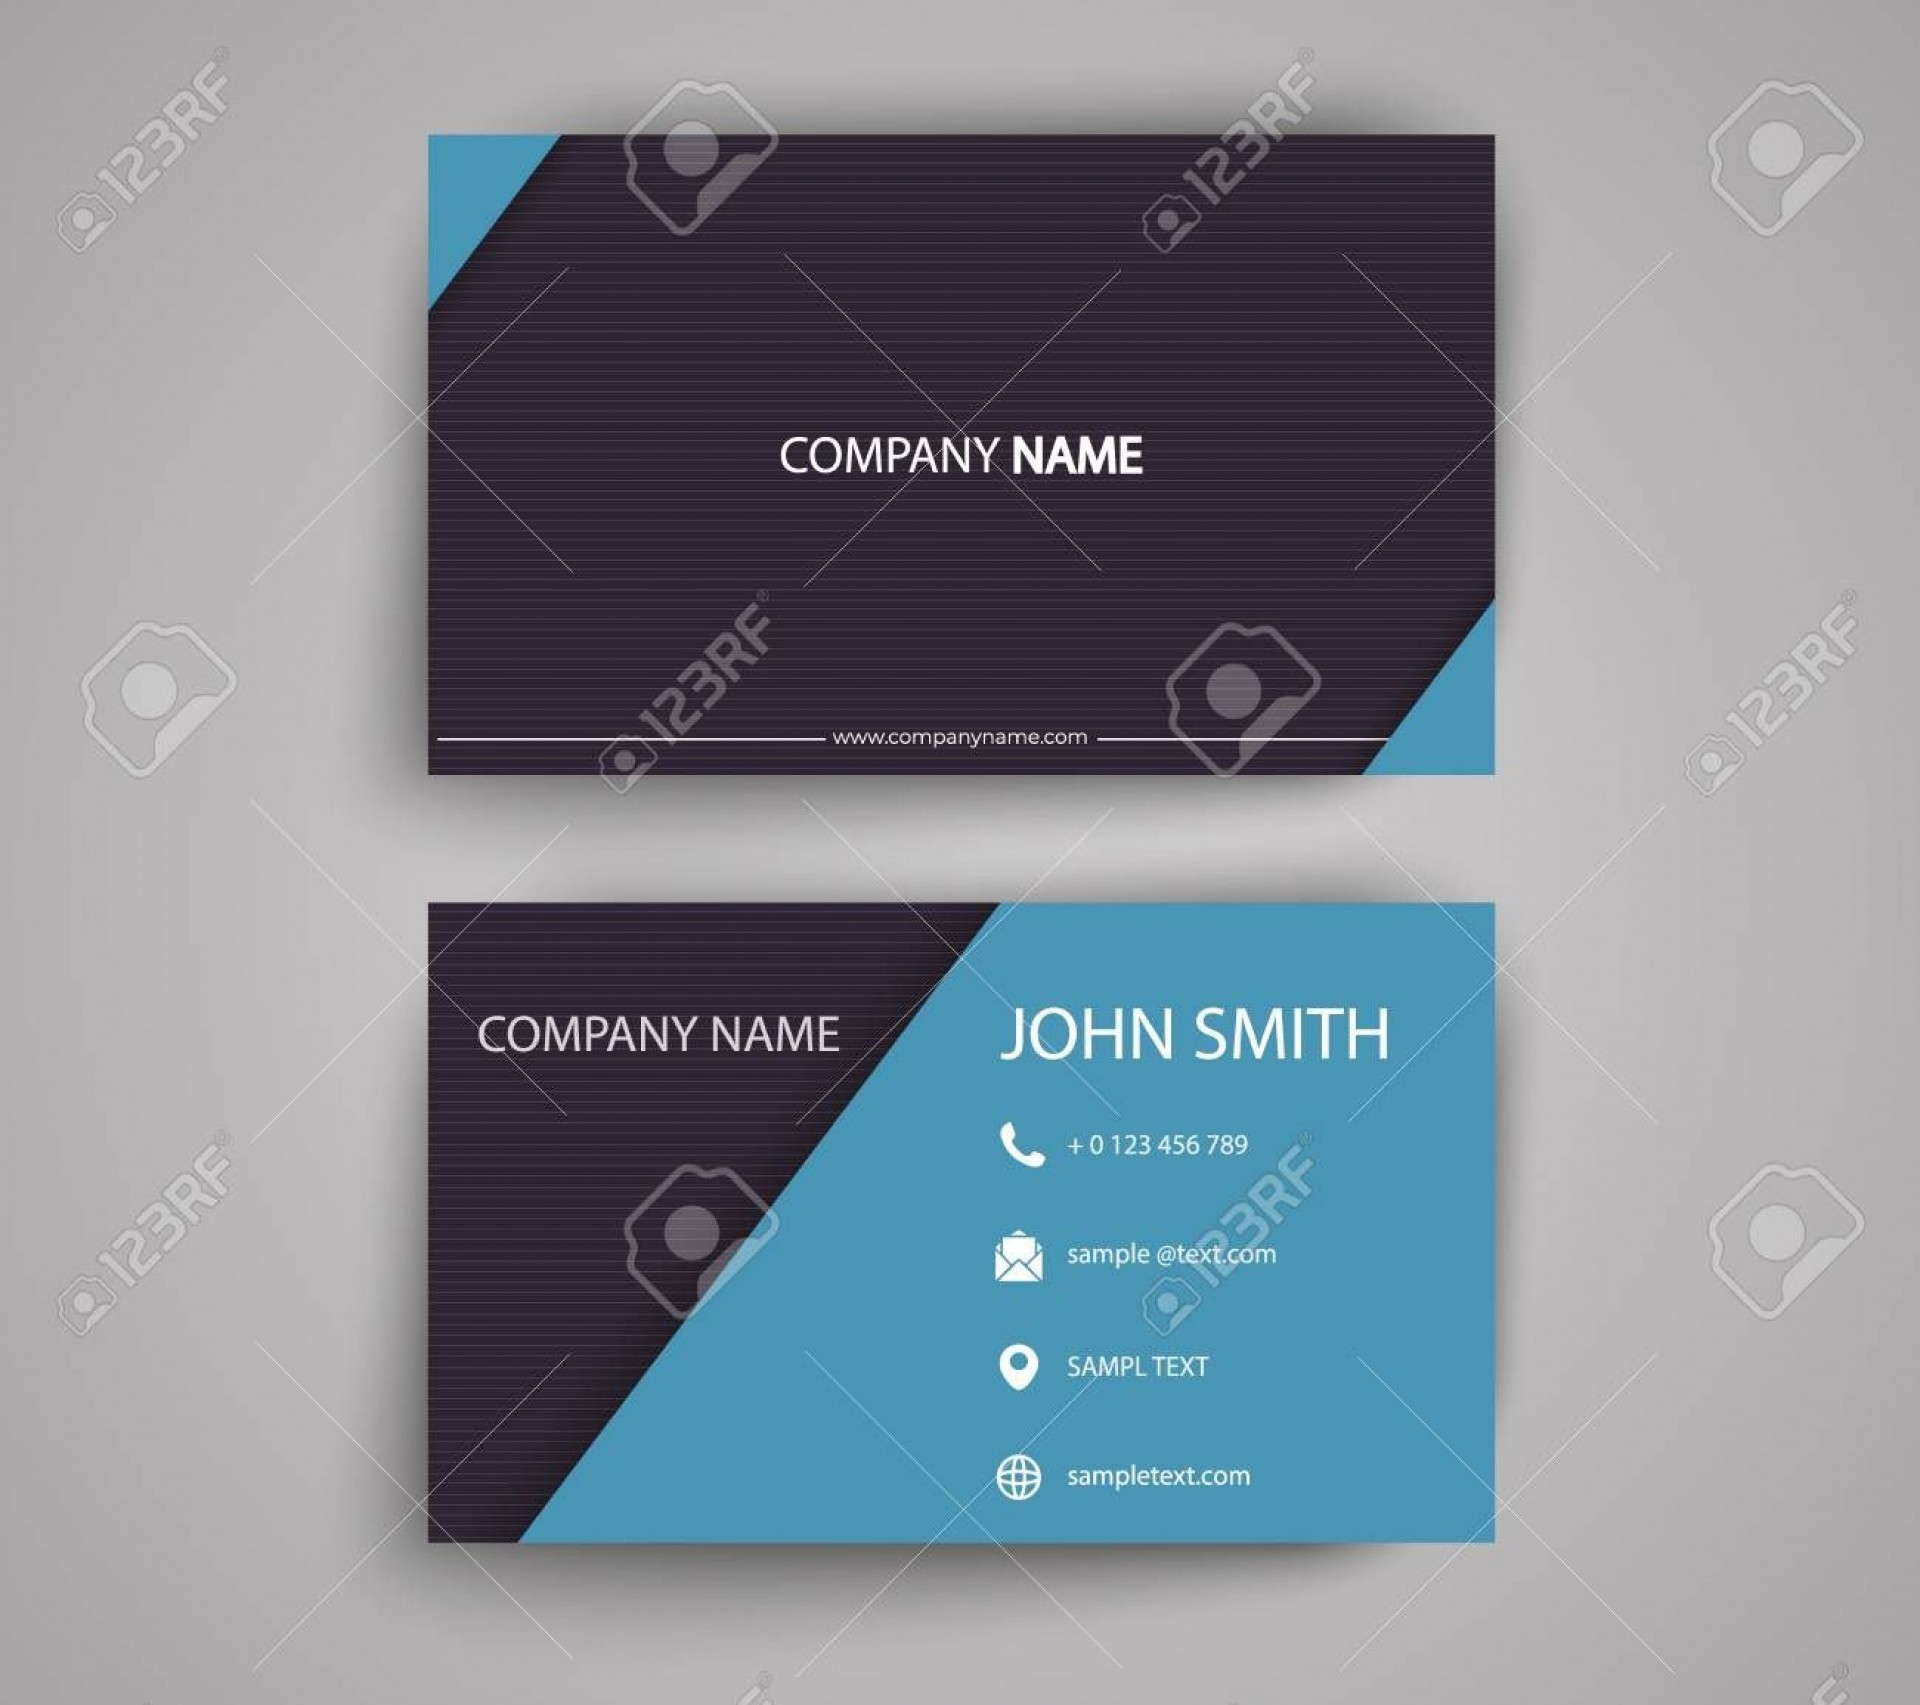 001 Frightening Double Sided Busines Card Template Design  Templates Word Free Two Microsoft1920